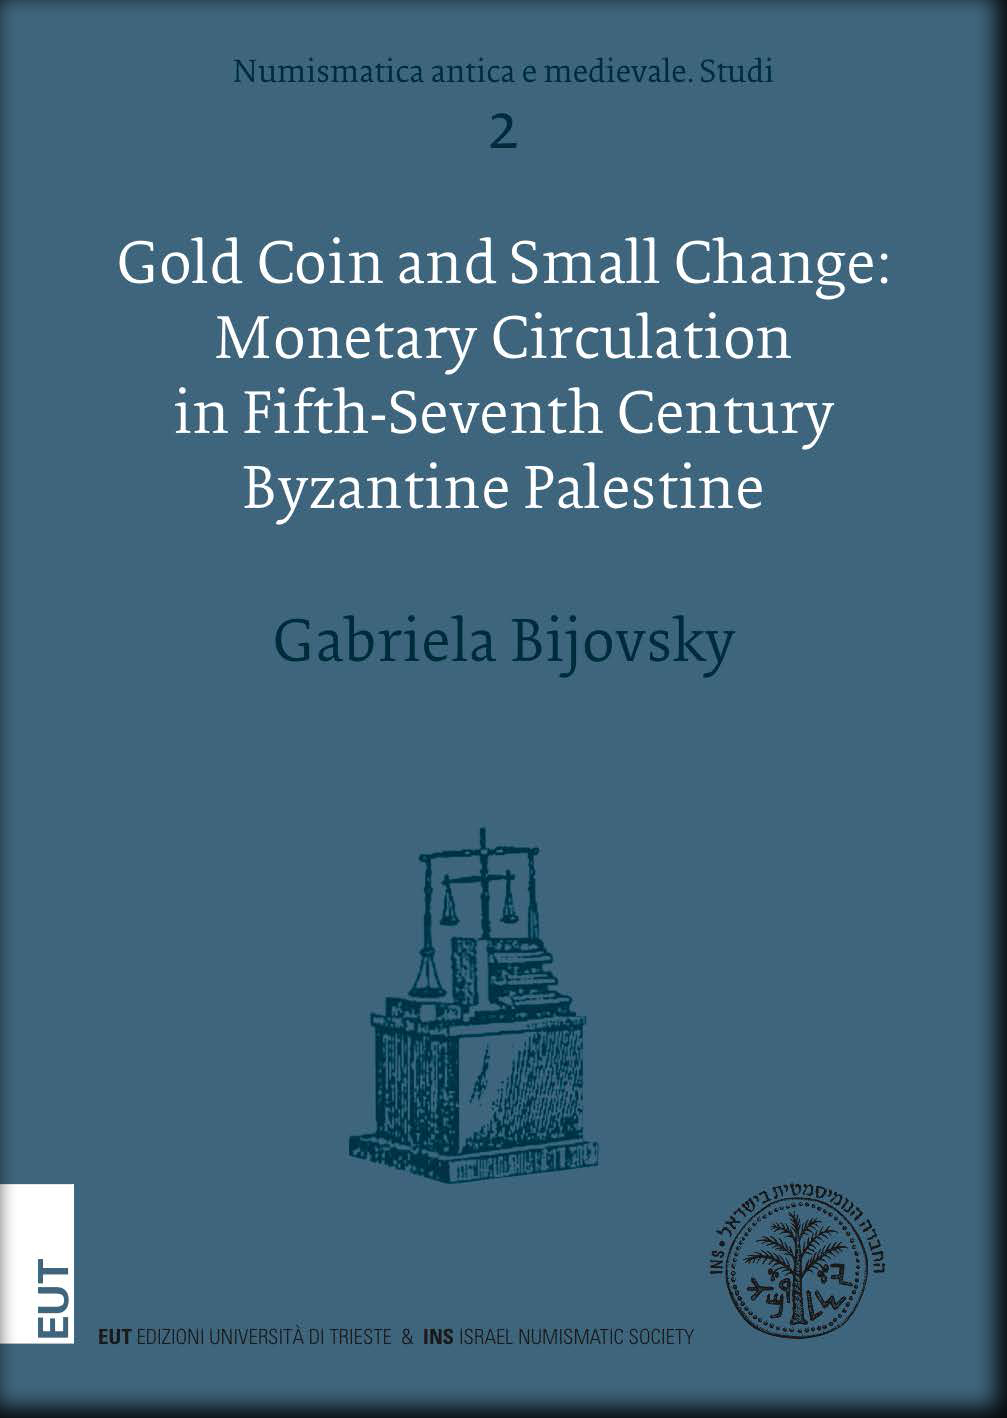 Gold Coin and Small Change: Monetary Circulation in Fifth-Seventh Century Byzantine Palestine